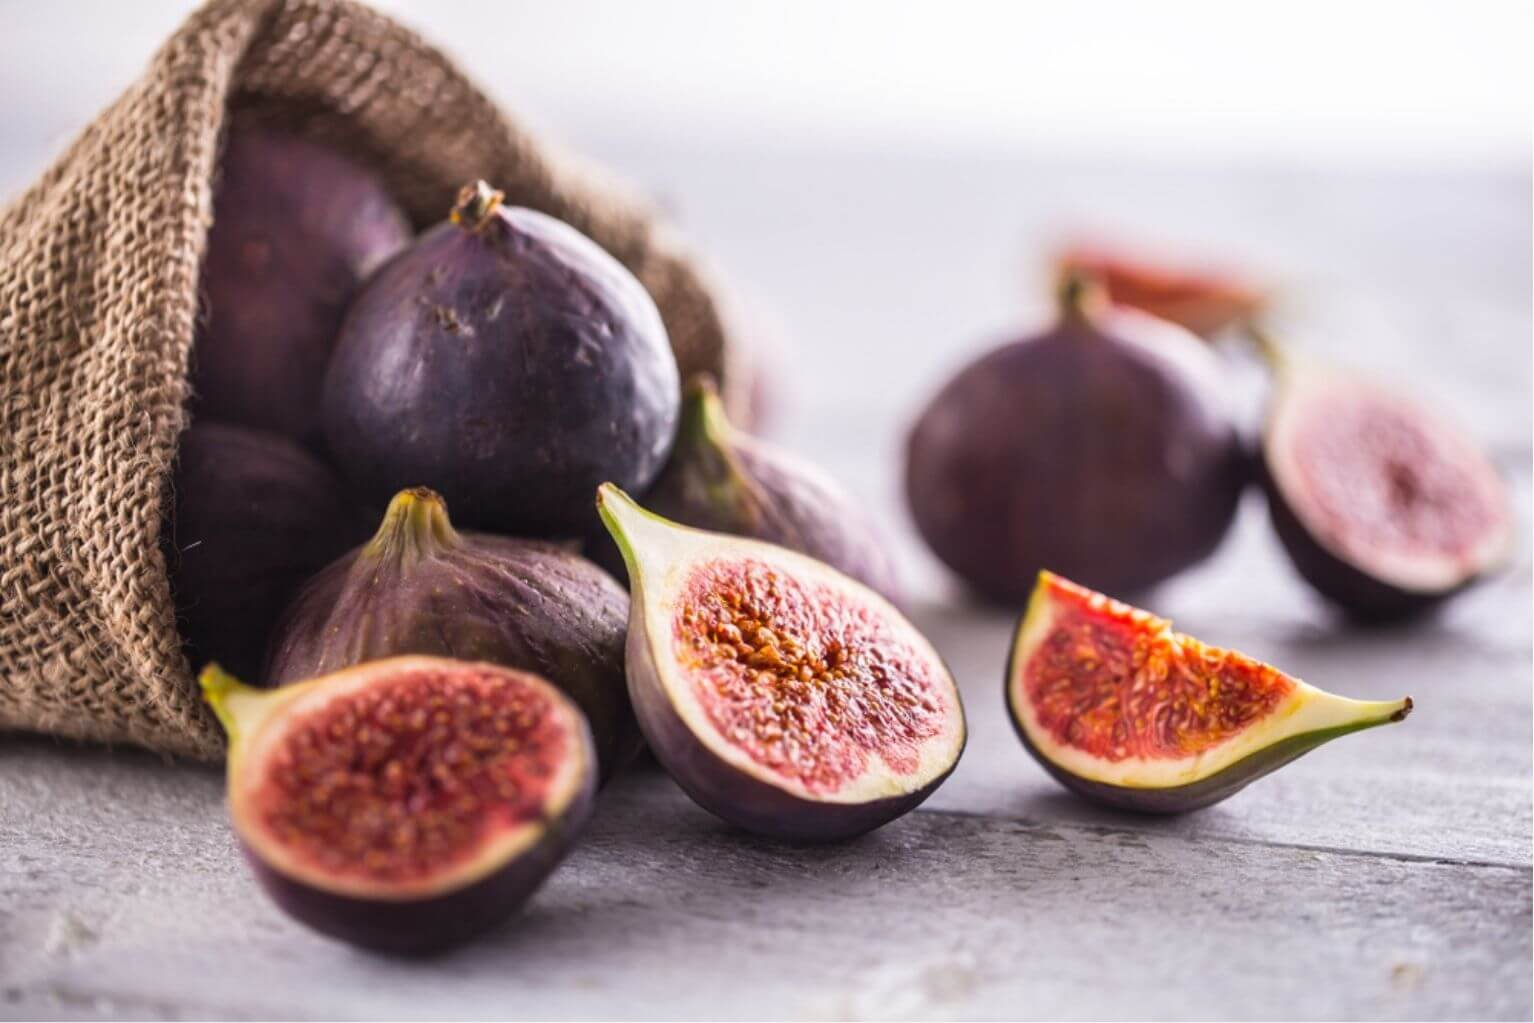 A burlap sack full of ripe figs over spilling onto a wooden table with three cut open figs in the front.